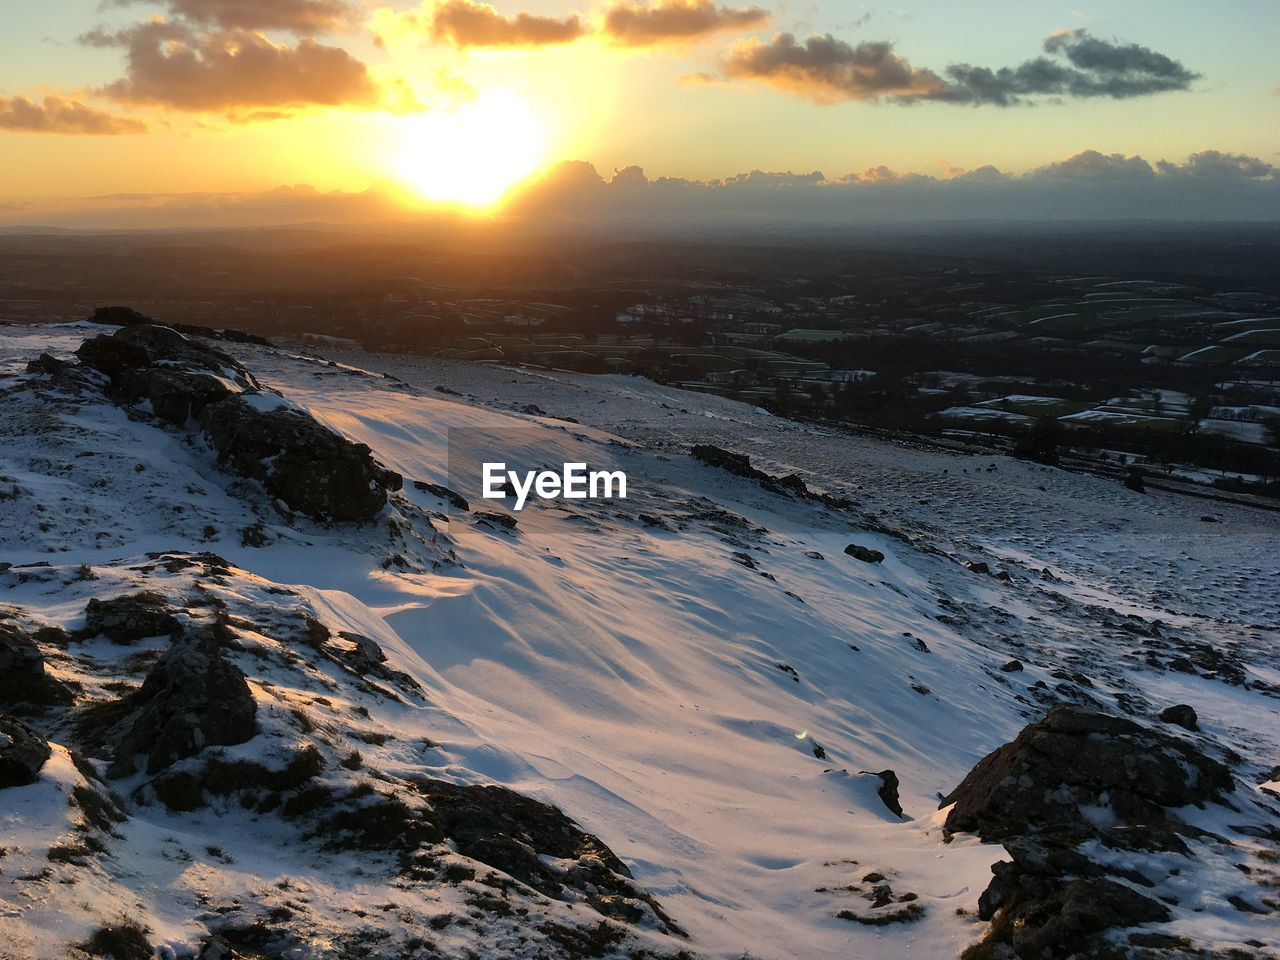 sunset, winter, snow, scenics - nature, sky, beauty in nature, cold temperature, tranquil scene, tranquility, nature, cloud - sky, sun, orange color, sunlight, no people, non-urban scene, water, covering, land, outdoors, snowcapped mountain